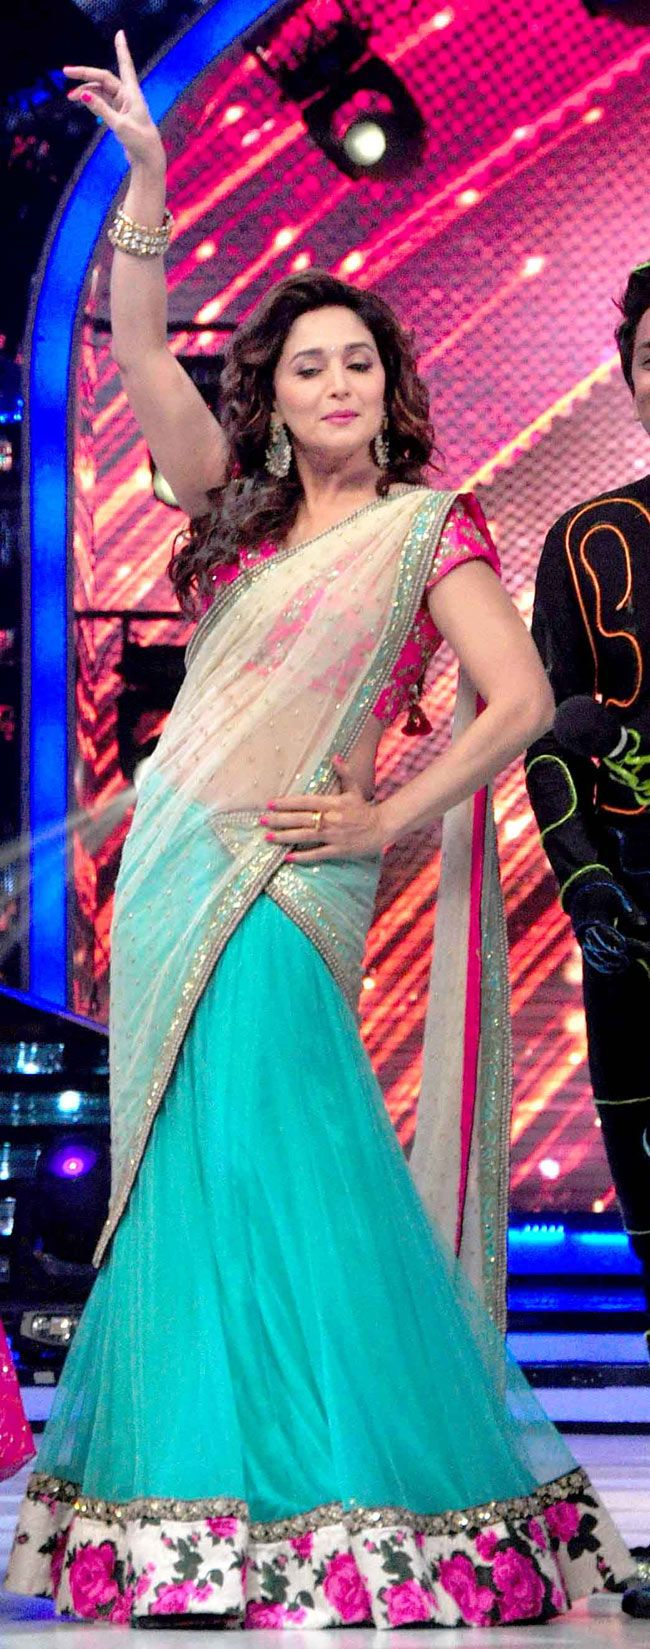 Madhuri Dixit shows off her dance moves on 'Jhalak Dikkhla Jaa'. #Bollywood #Fashion #Style #Beauty